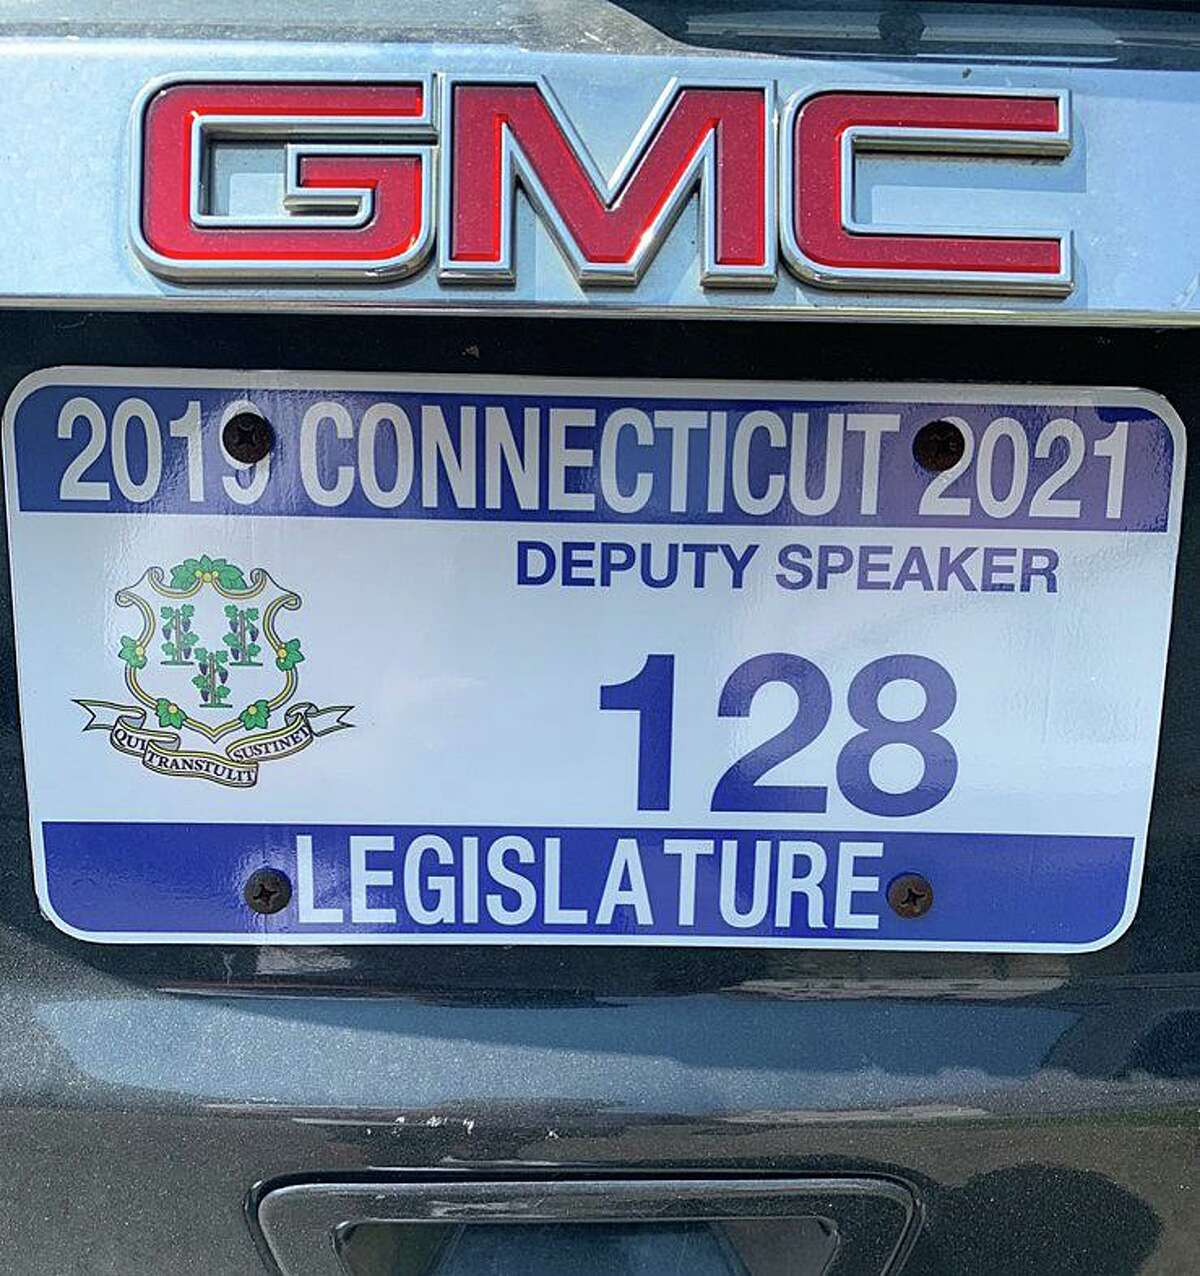 The license plates on the vehicle being driven by Bridgeport State Rep. Christopher Rosario on Wednesday, Dec. 11, 2019, in Bridgeport, Conn. An officer told Rosario that the plates that he had on his vehicle had been reported stolen out of Meriden.